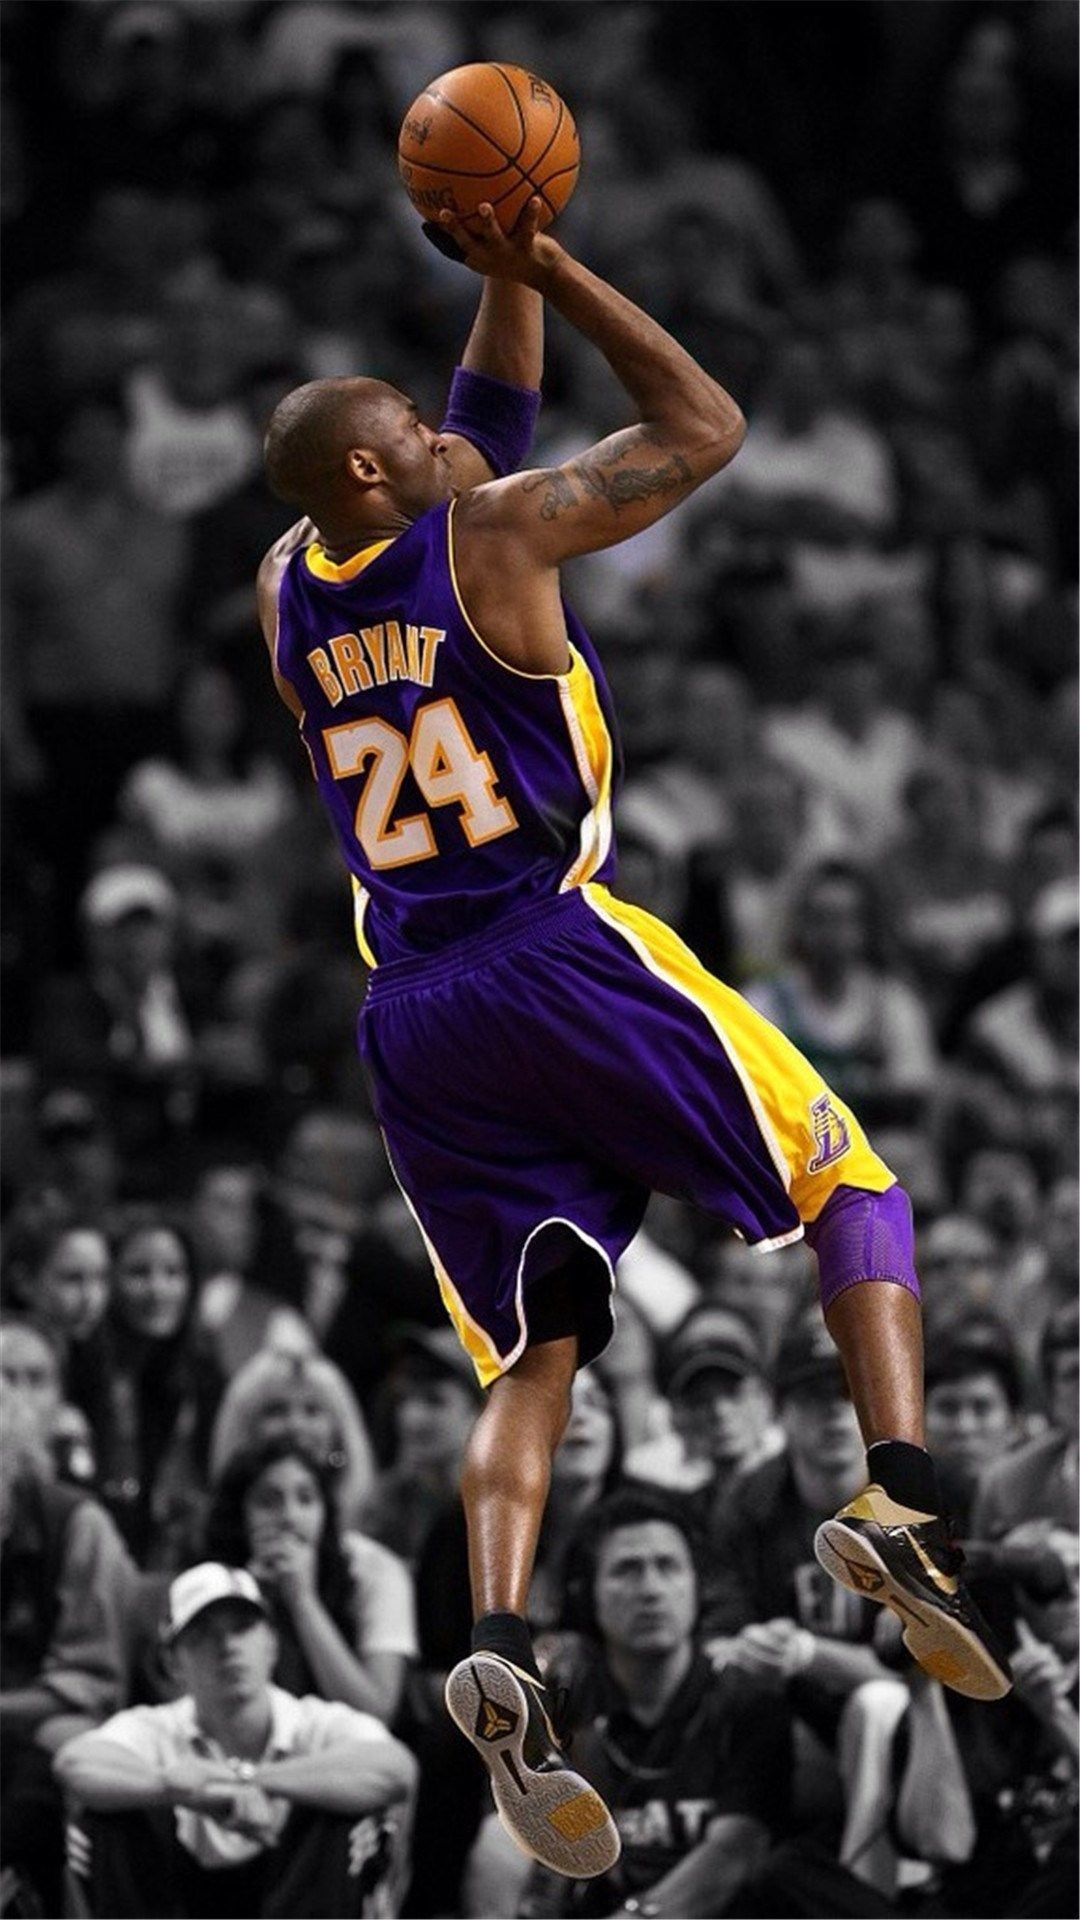 Pin By Tinhtamhawaii On Kobe Brian 24 In 2020 With Images Kobe